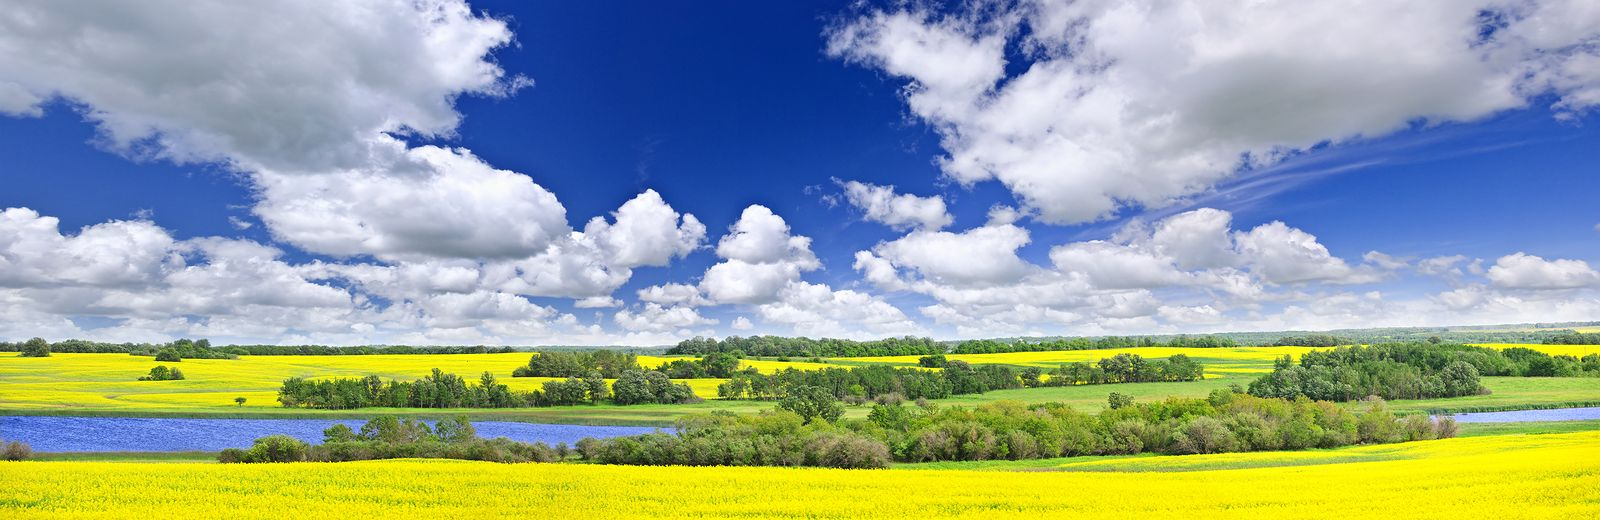 Panoramic Landscape Prairie View Of Canola Field And Lake